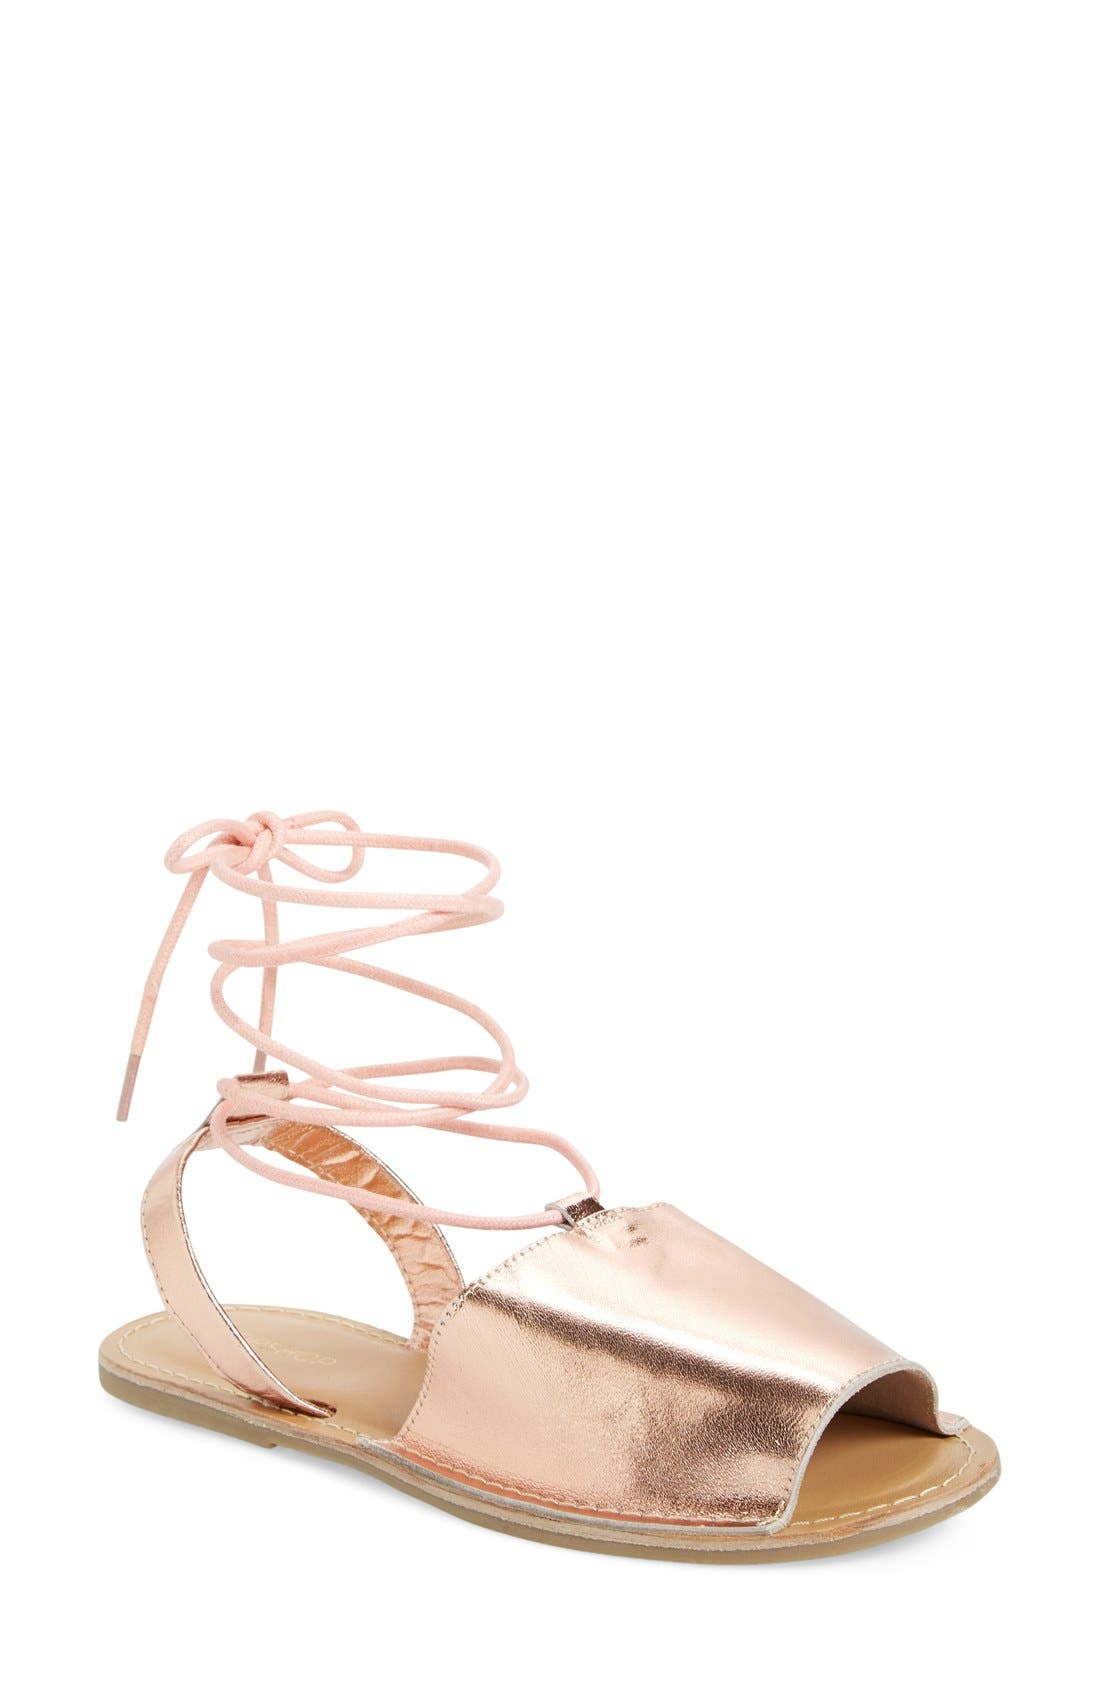 Alternate Image 1 Selected - Topshop 'Holly' Lace-Up Sandal (Women)